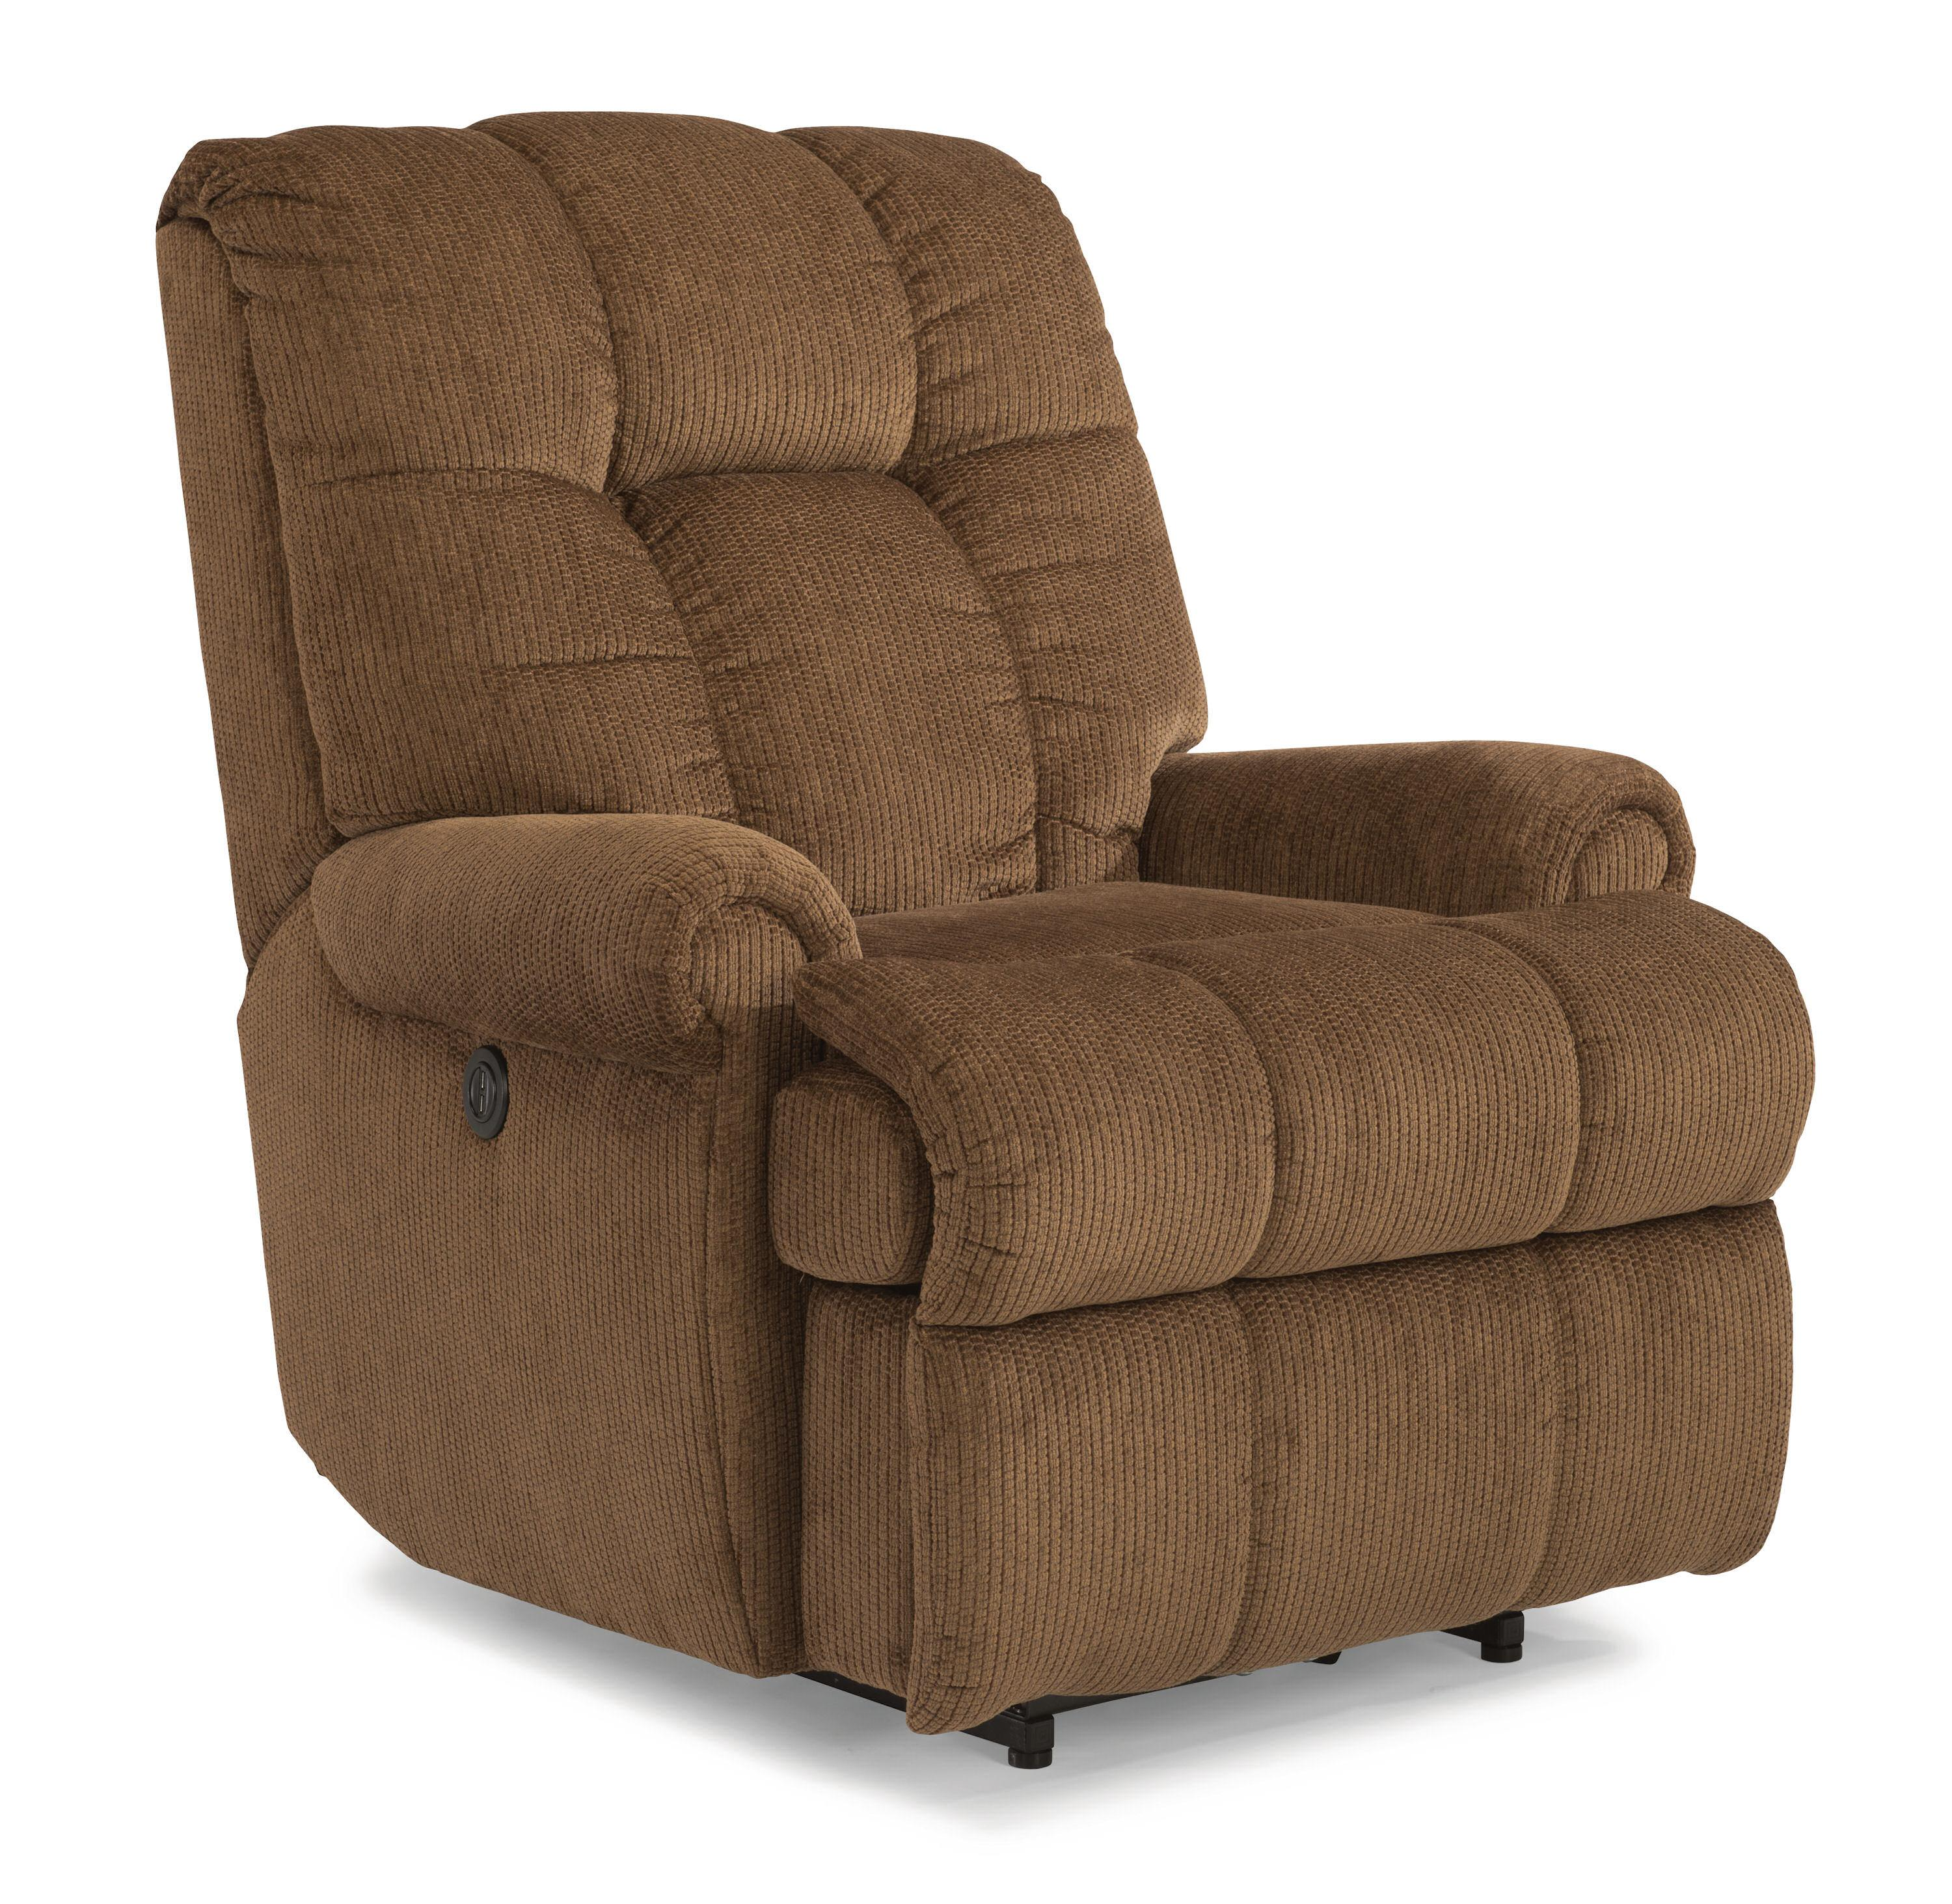 Accents Large Recliner with Power by Flexsteel at Suburban Furniture